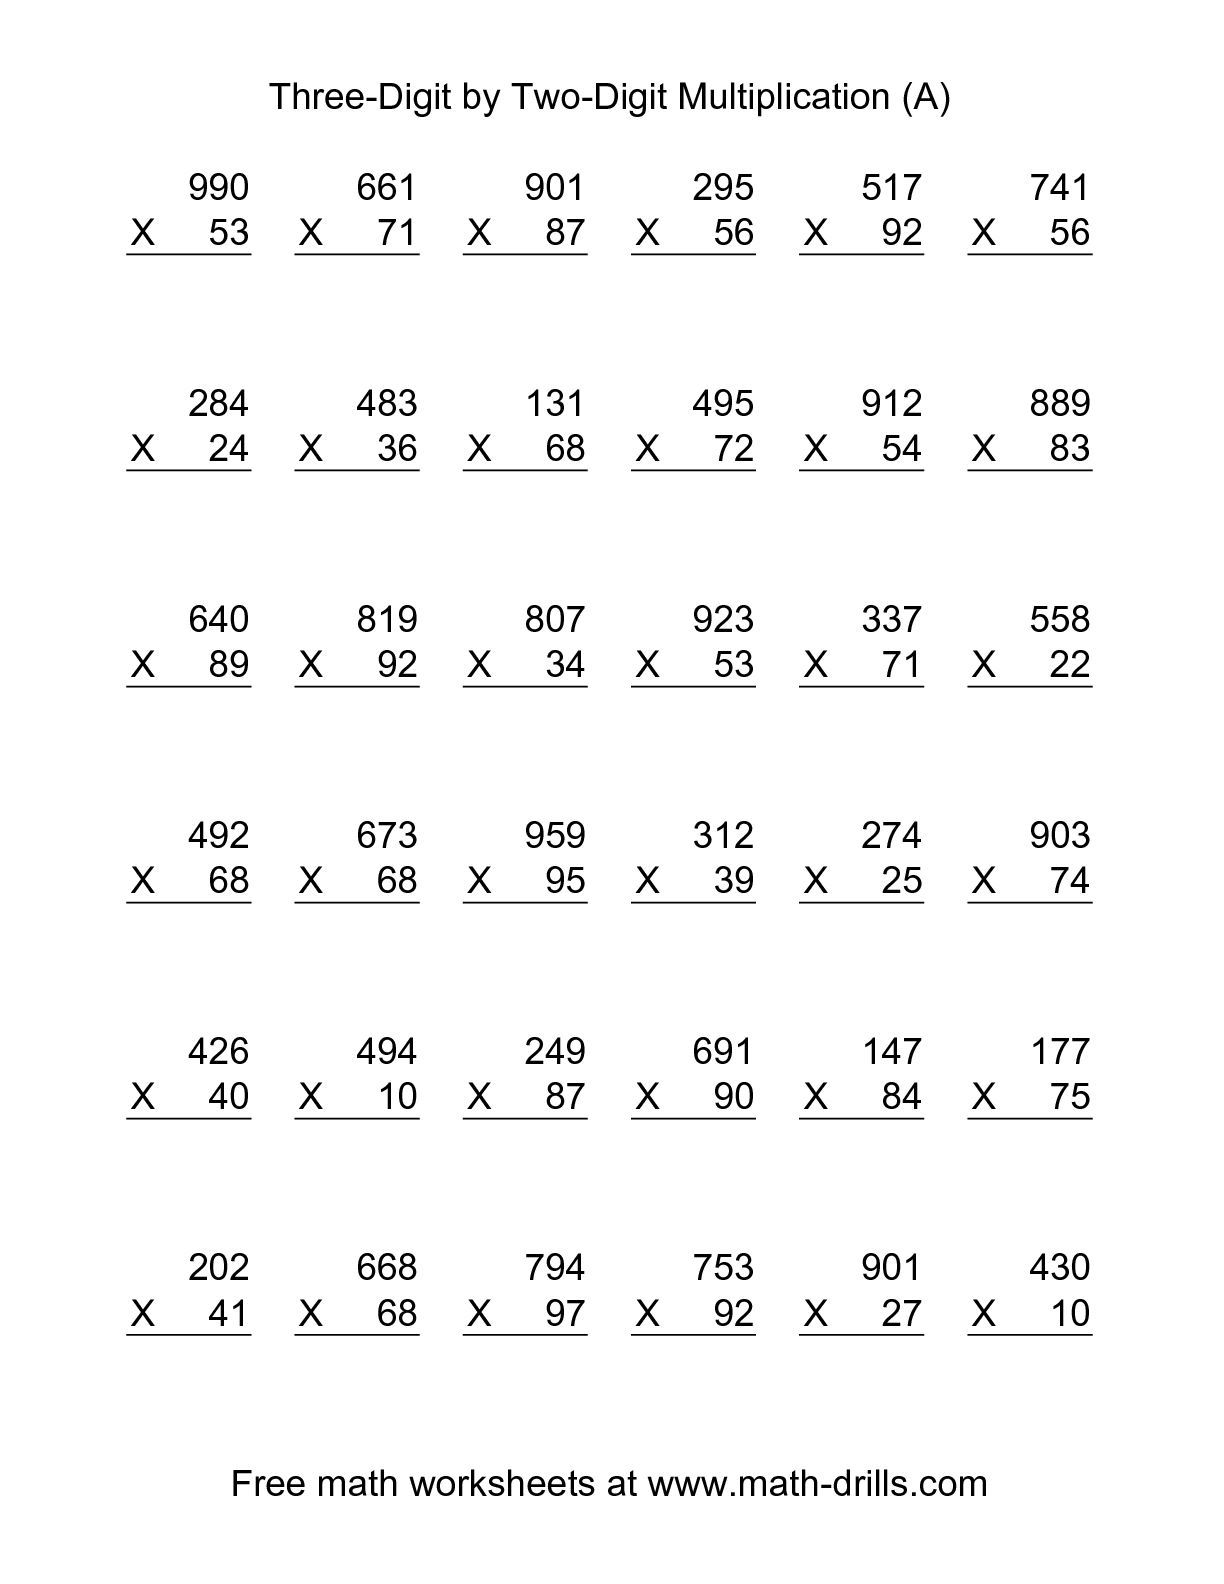 worksheet Multiplying 2 Digit By 2 Digit Worksheets the multiplying three digit by two 36 per page a math multiplication worksheet per